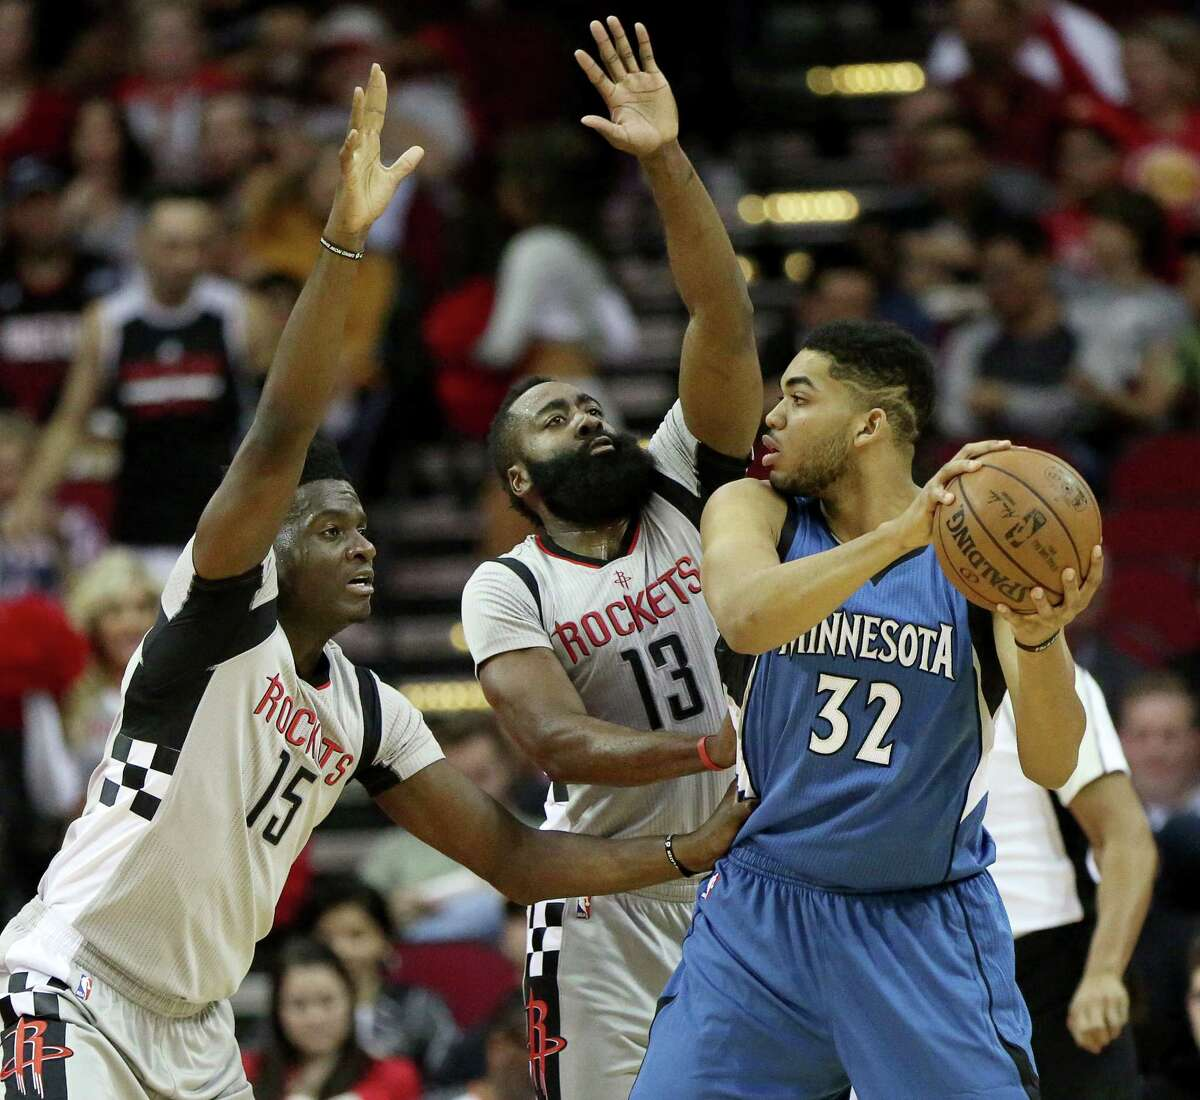 Houston Rockets players Clint Capela (15) and James Harden (13) guarding Minnesota Timberwolves center Karl-Anthony Towns (32) together during the first quarter of the game at Toyota Center Saturday, Feb. 25, 2017, in Houston.